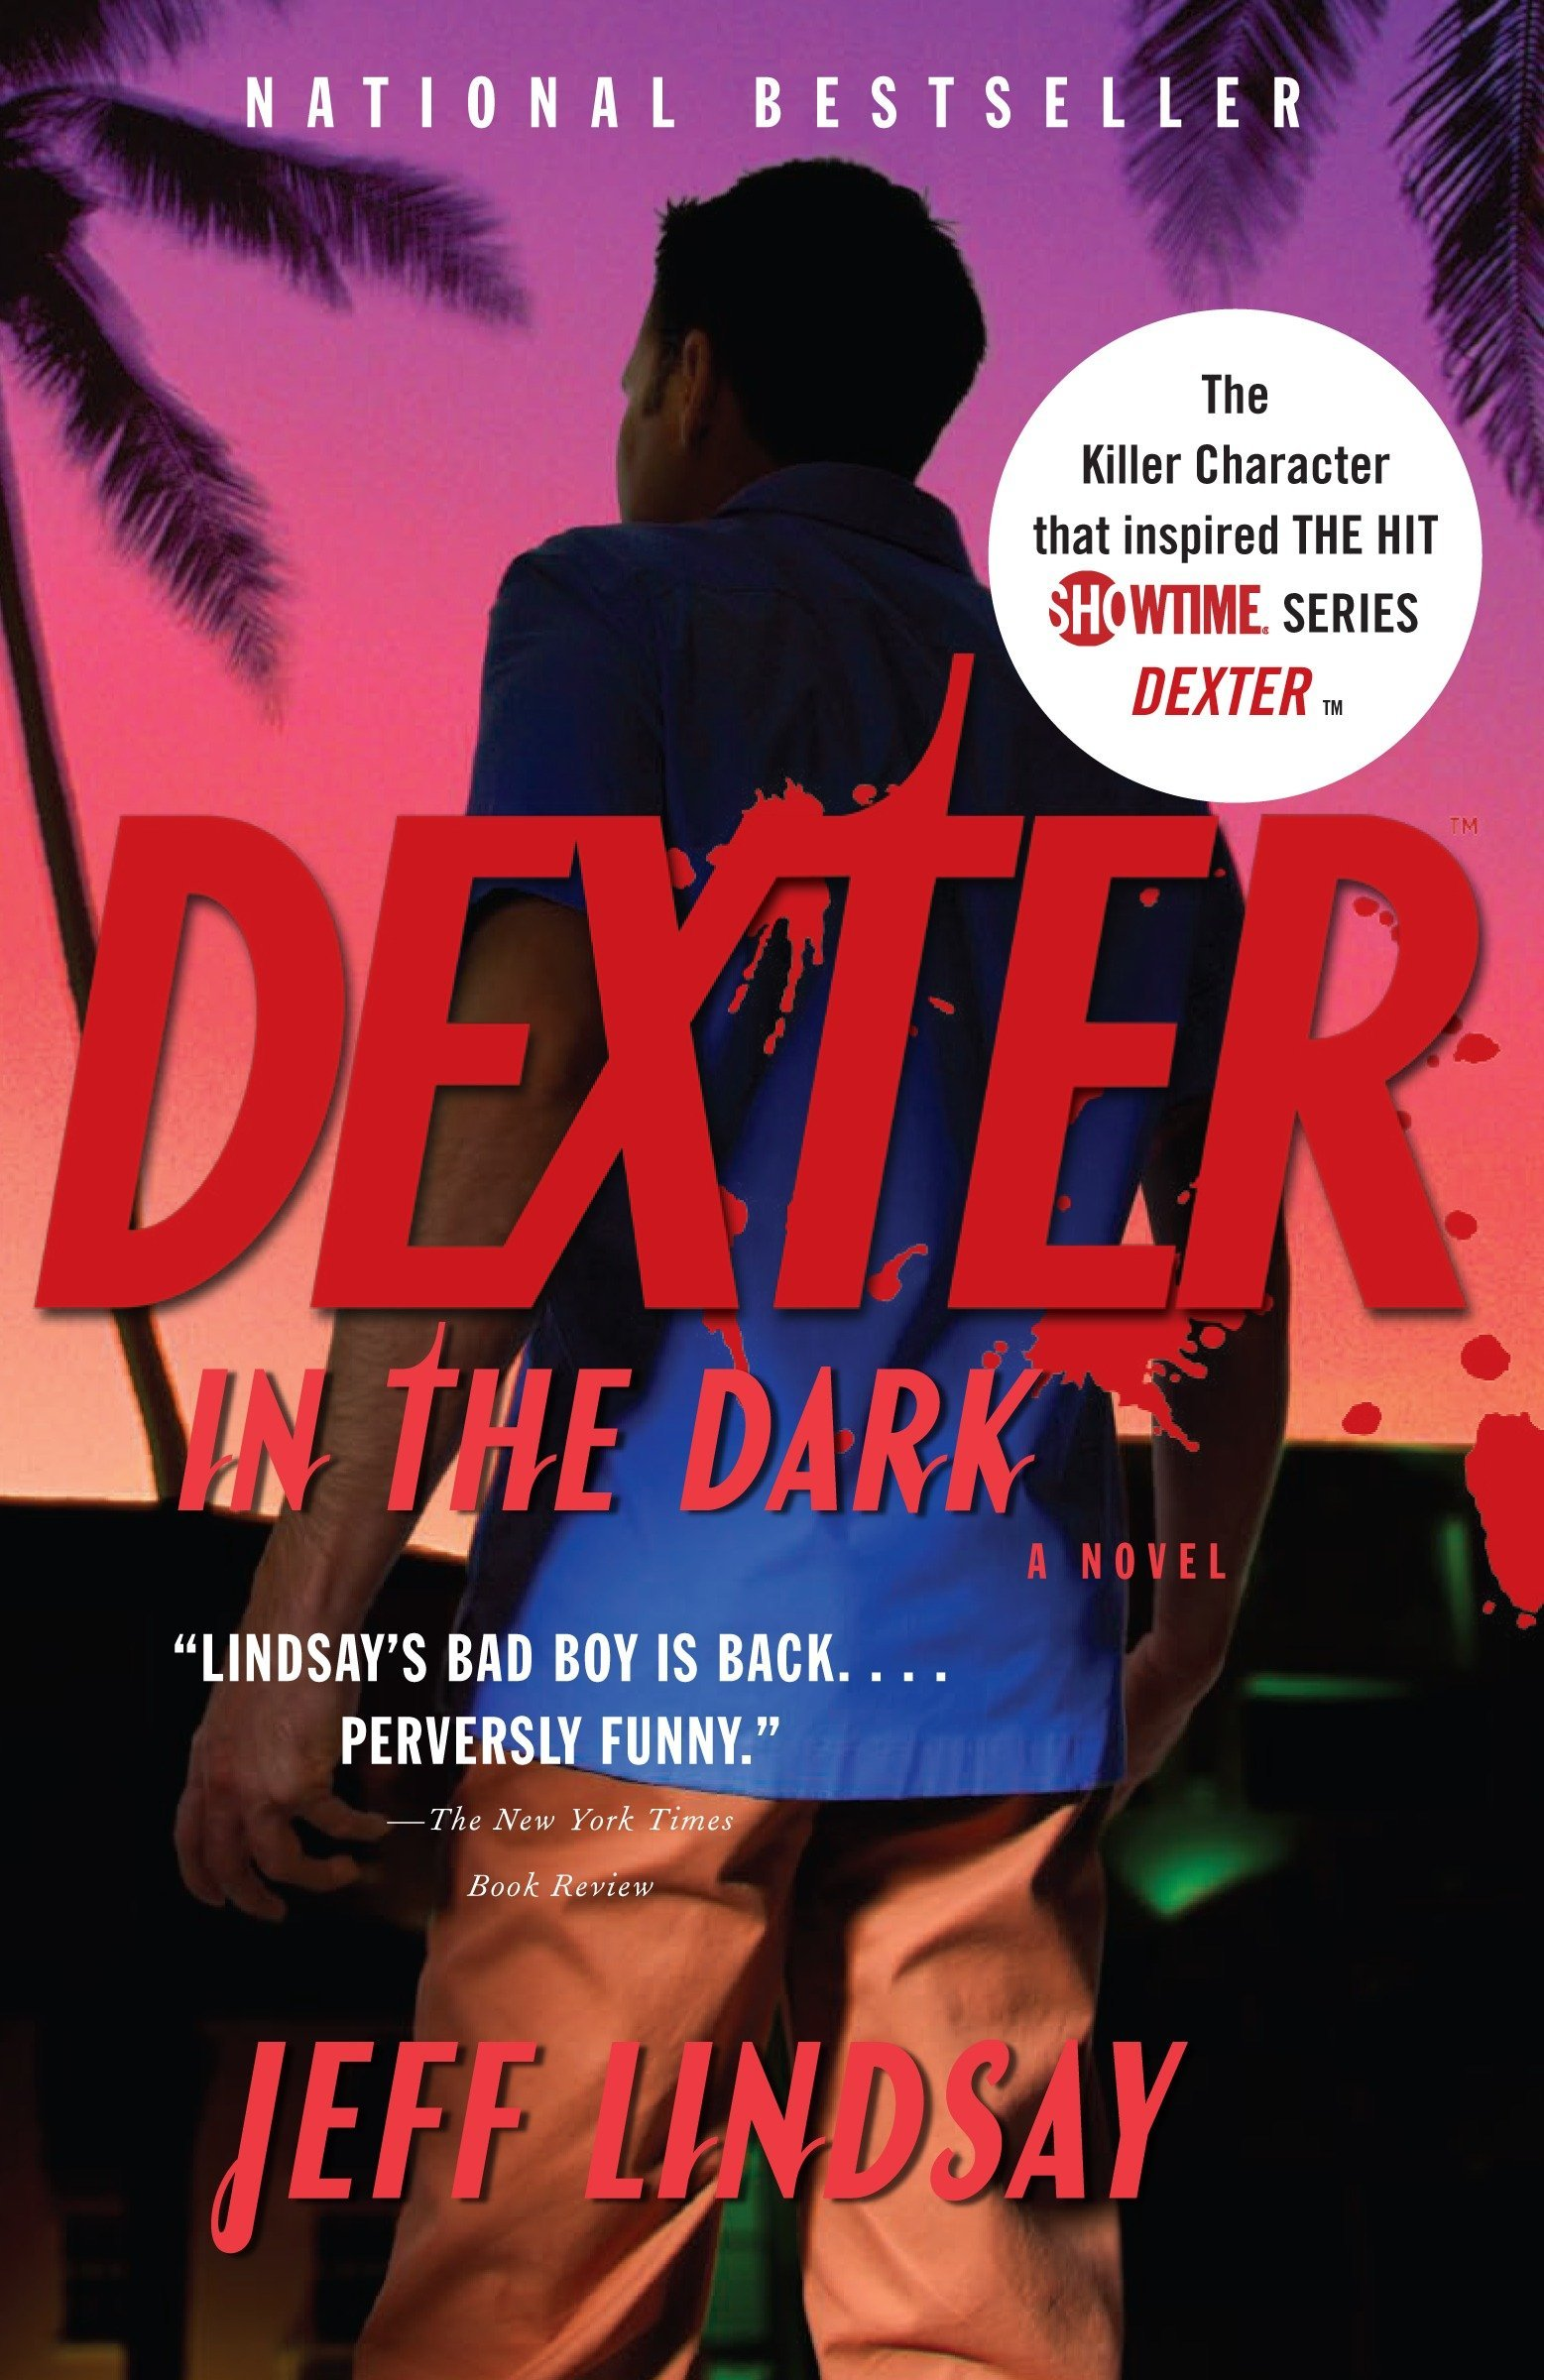 how many dexter books are there